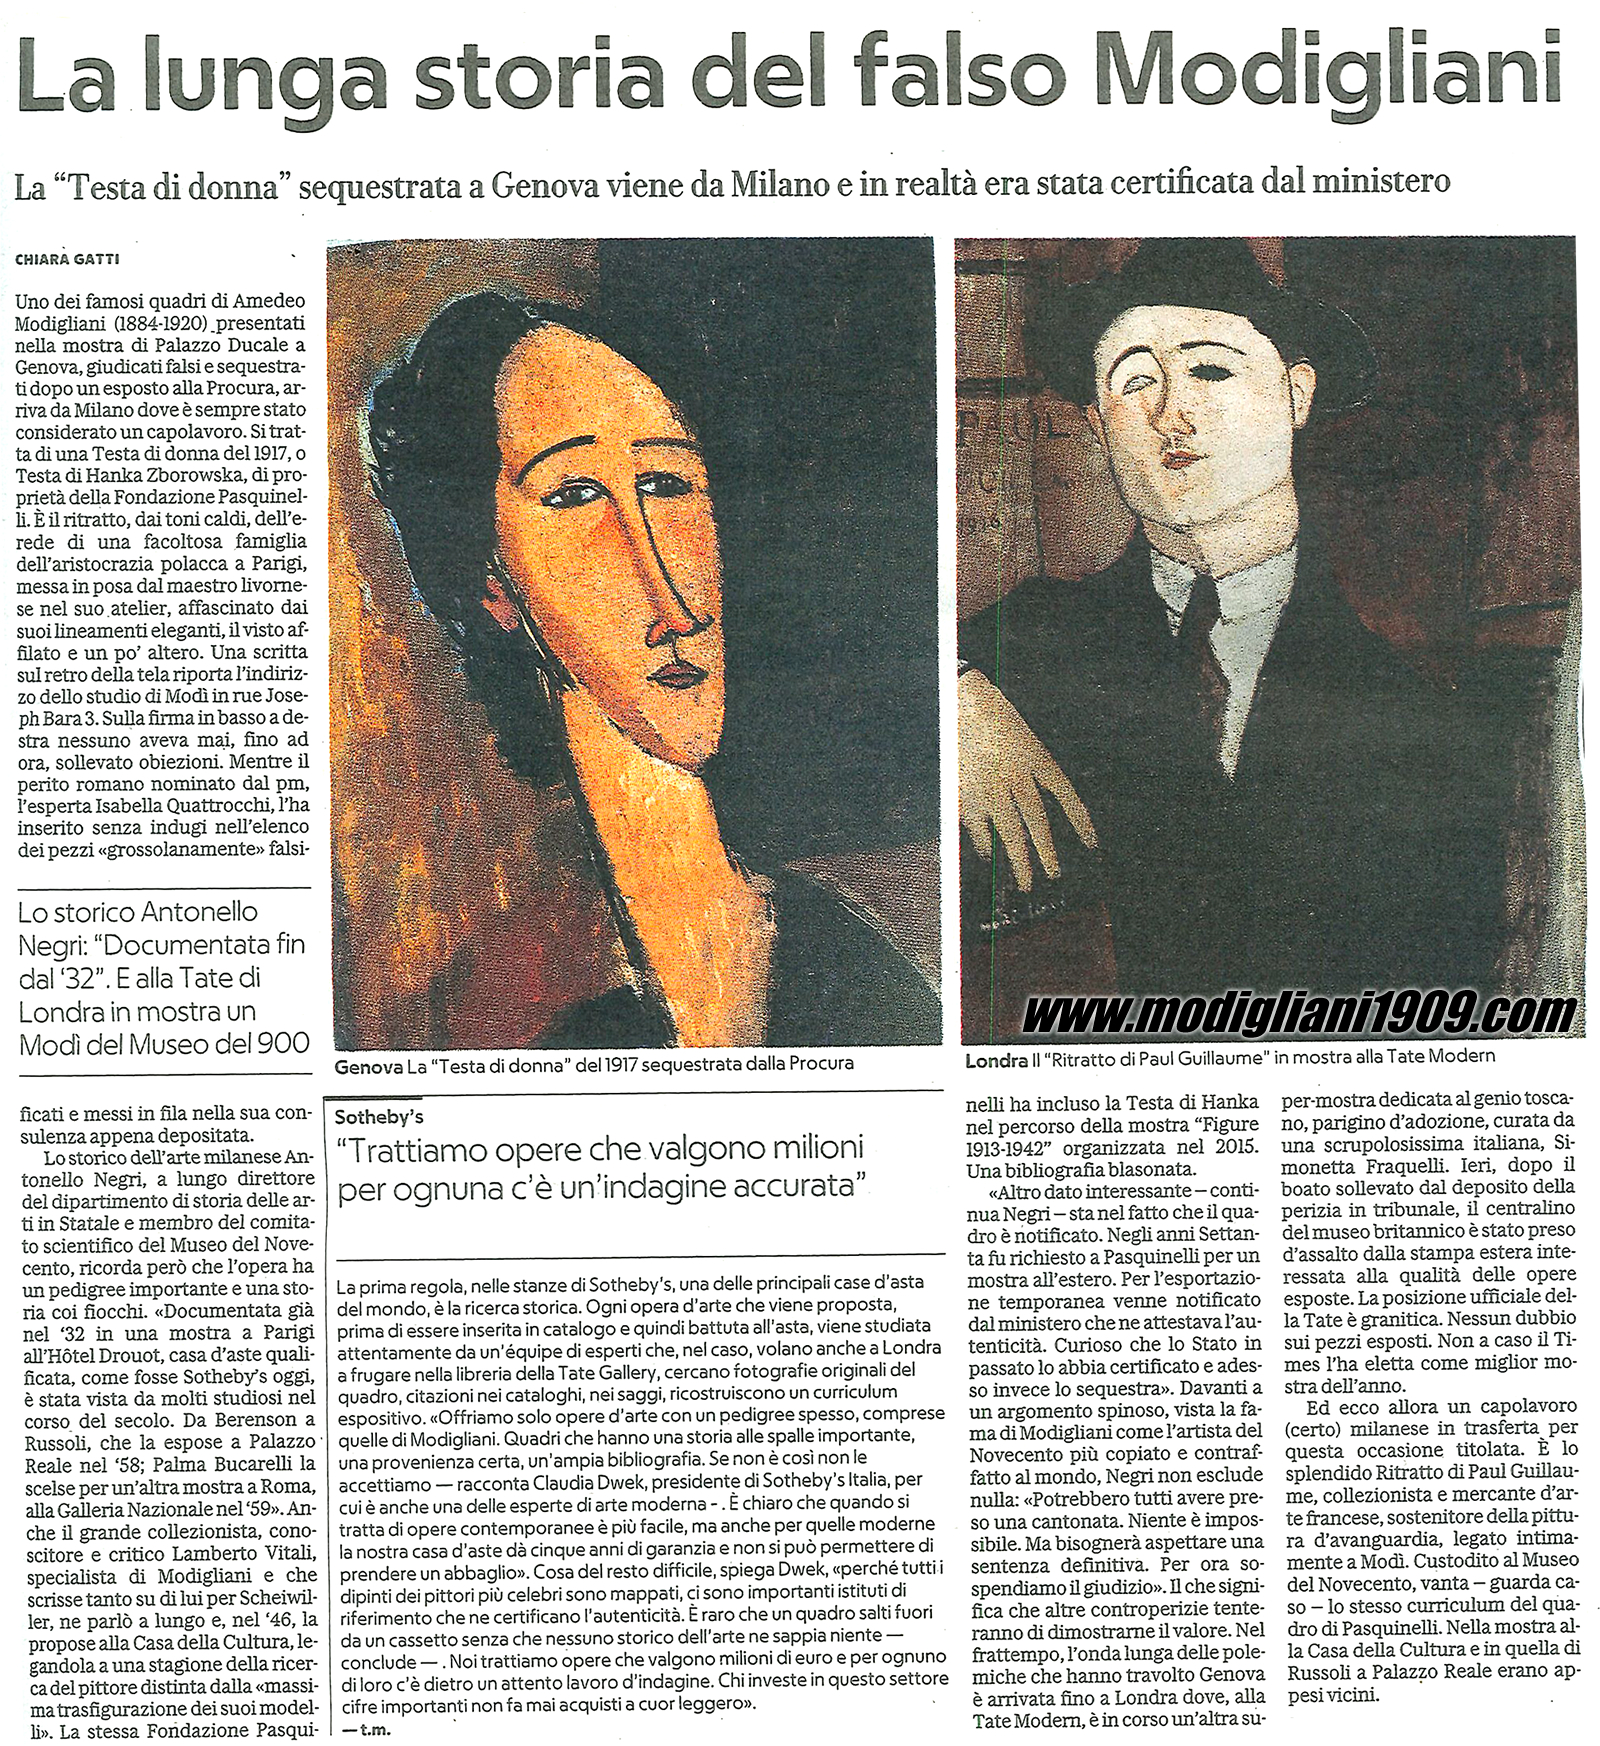 Palace Entirely Modigliani Ducal Art Exhibited Fake Genoa Be Almost In To Revealed At